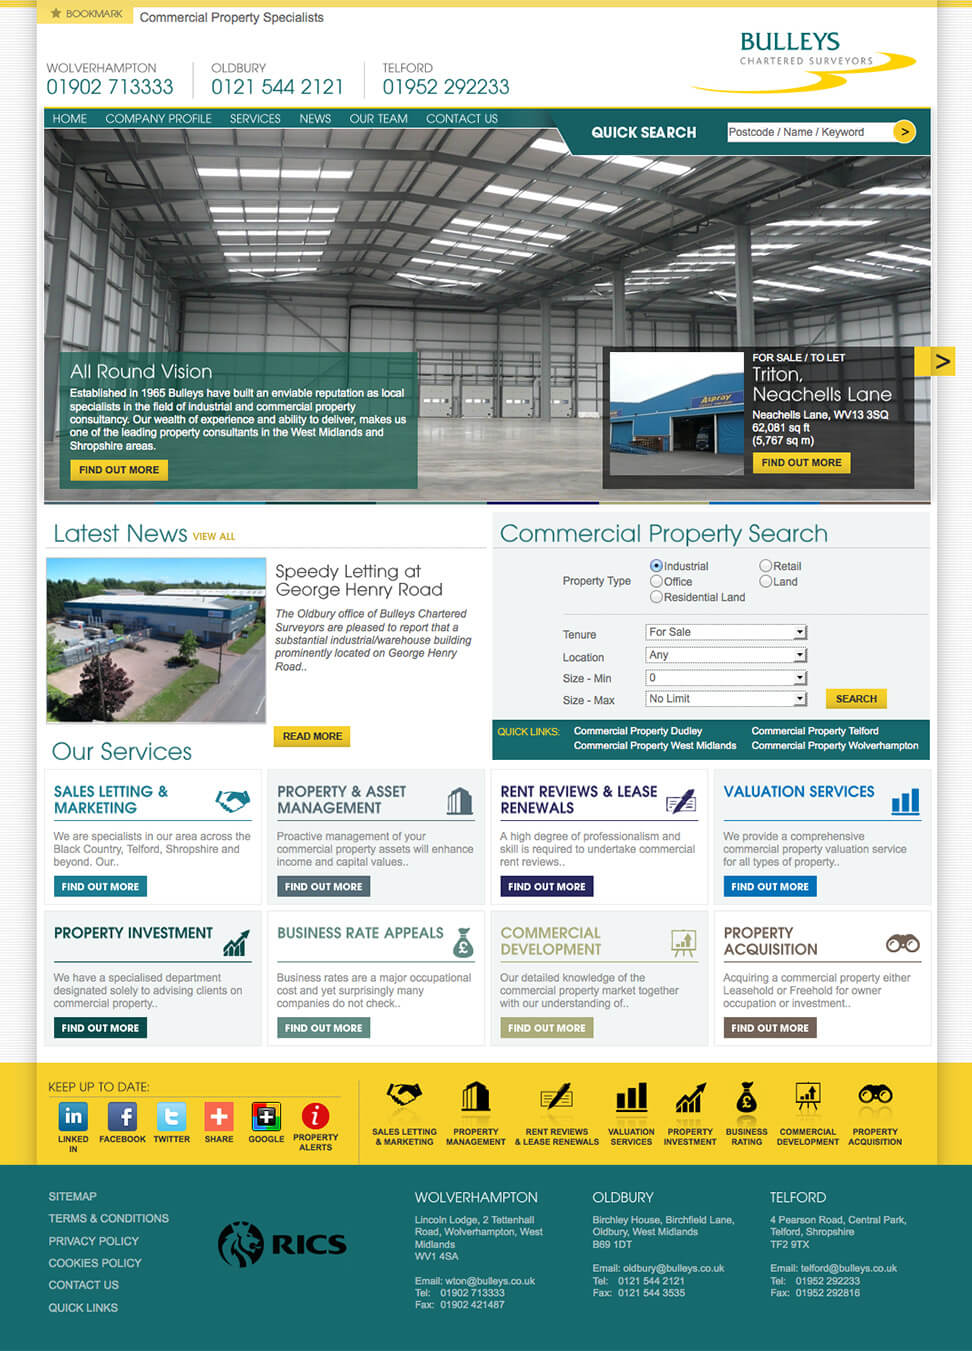 Bulleys Commercial Property Specialist